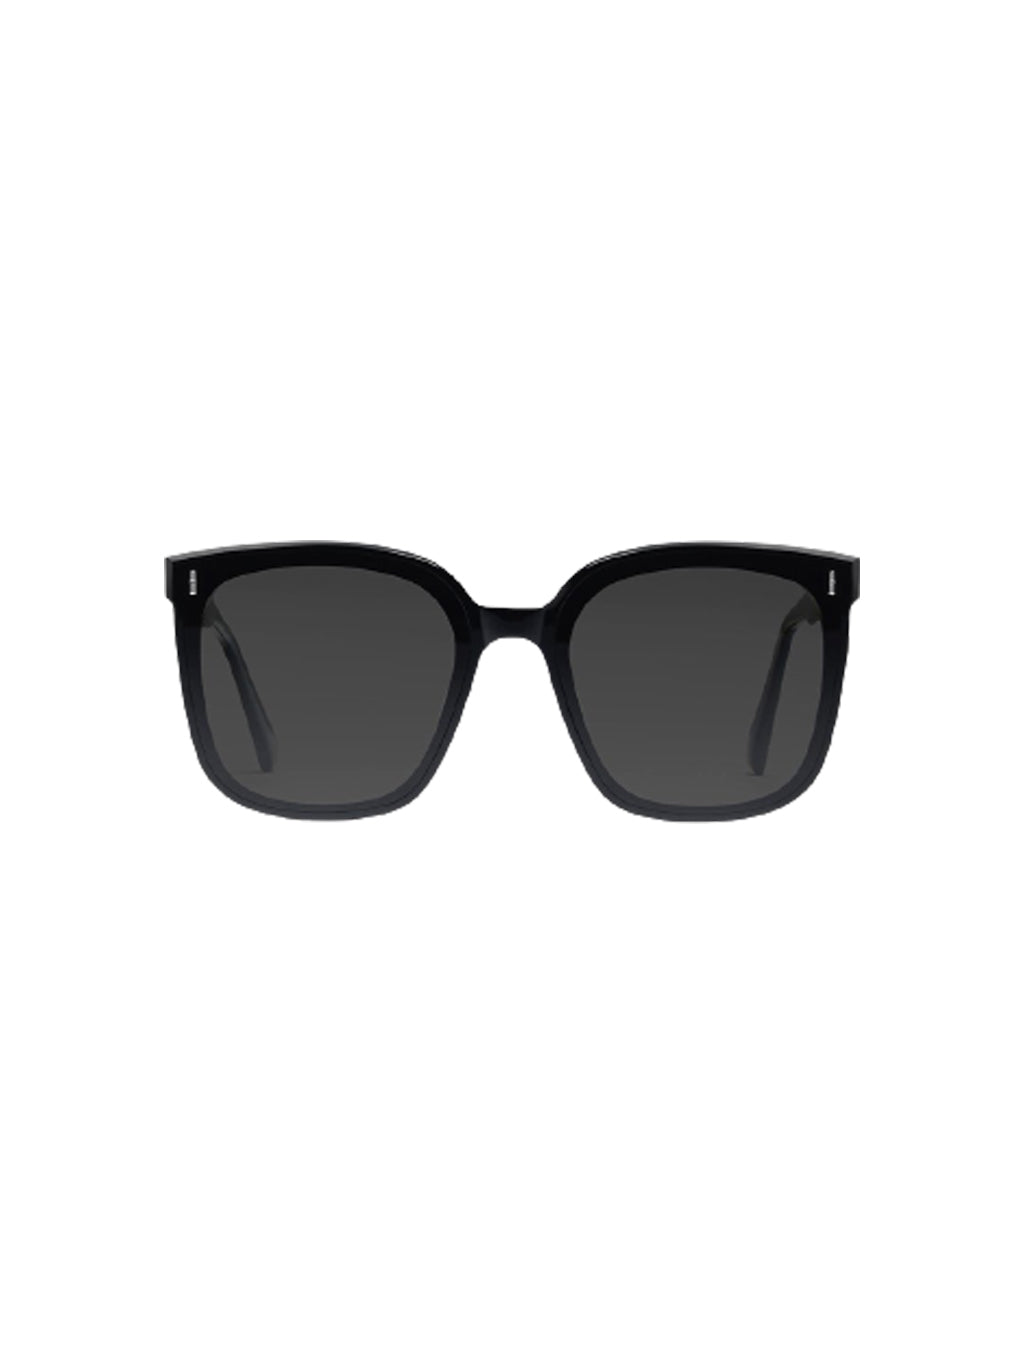 Black Frida 01 Sunglasses